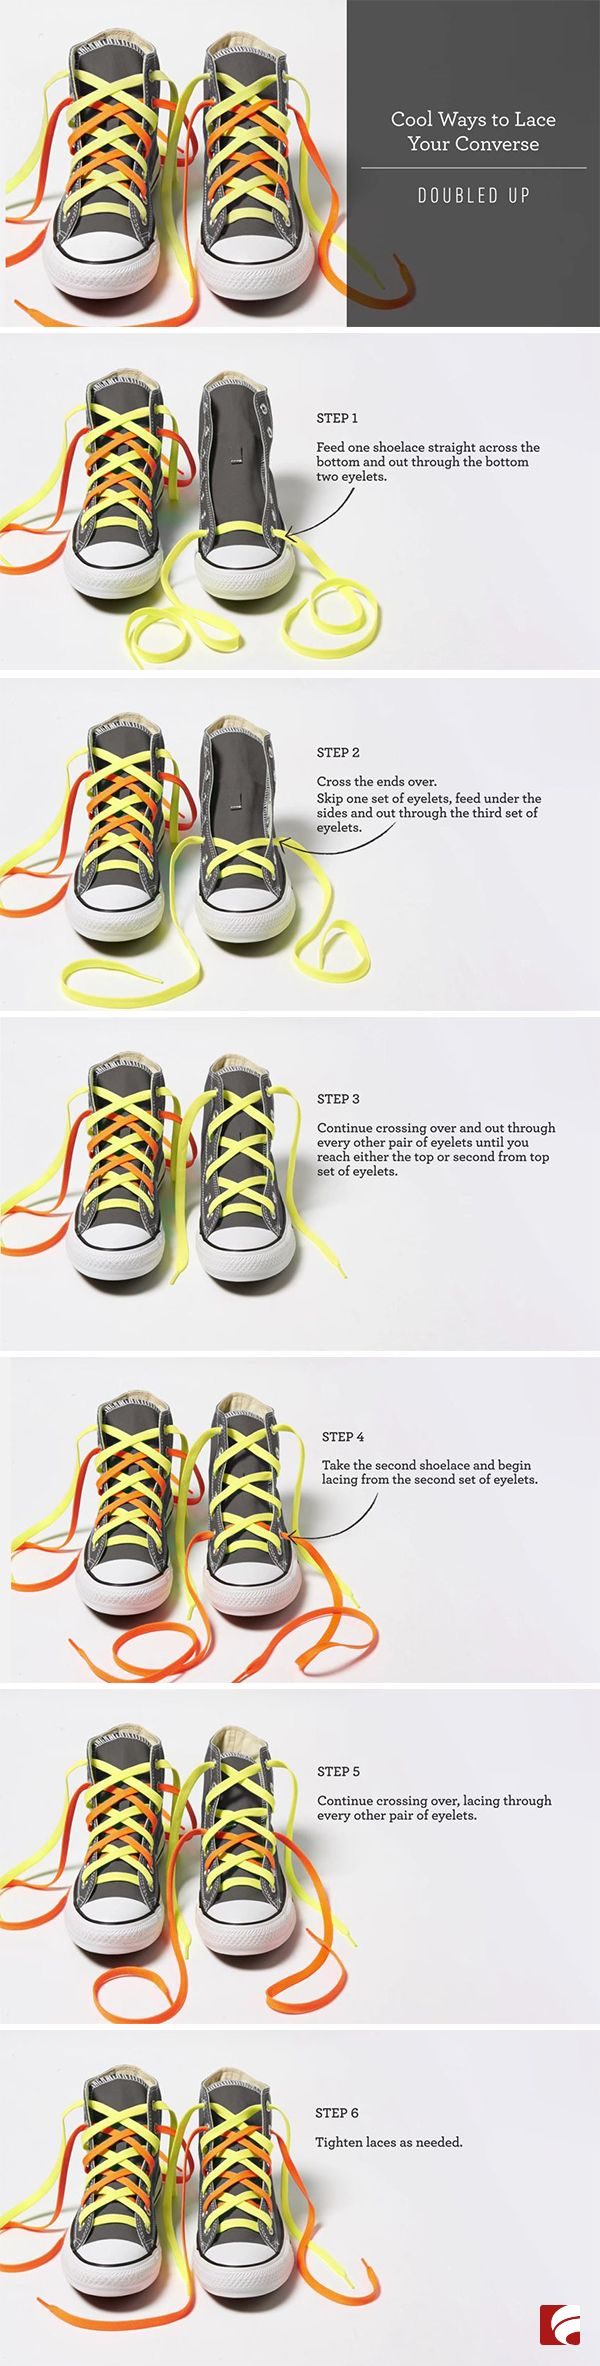 0becaf74f24be1 How to Lace Your Converse  Doubled Up. Theres nothing wrong with a classic  pair of grey Converse